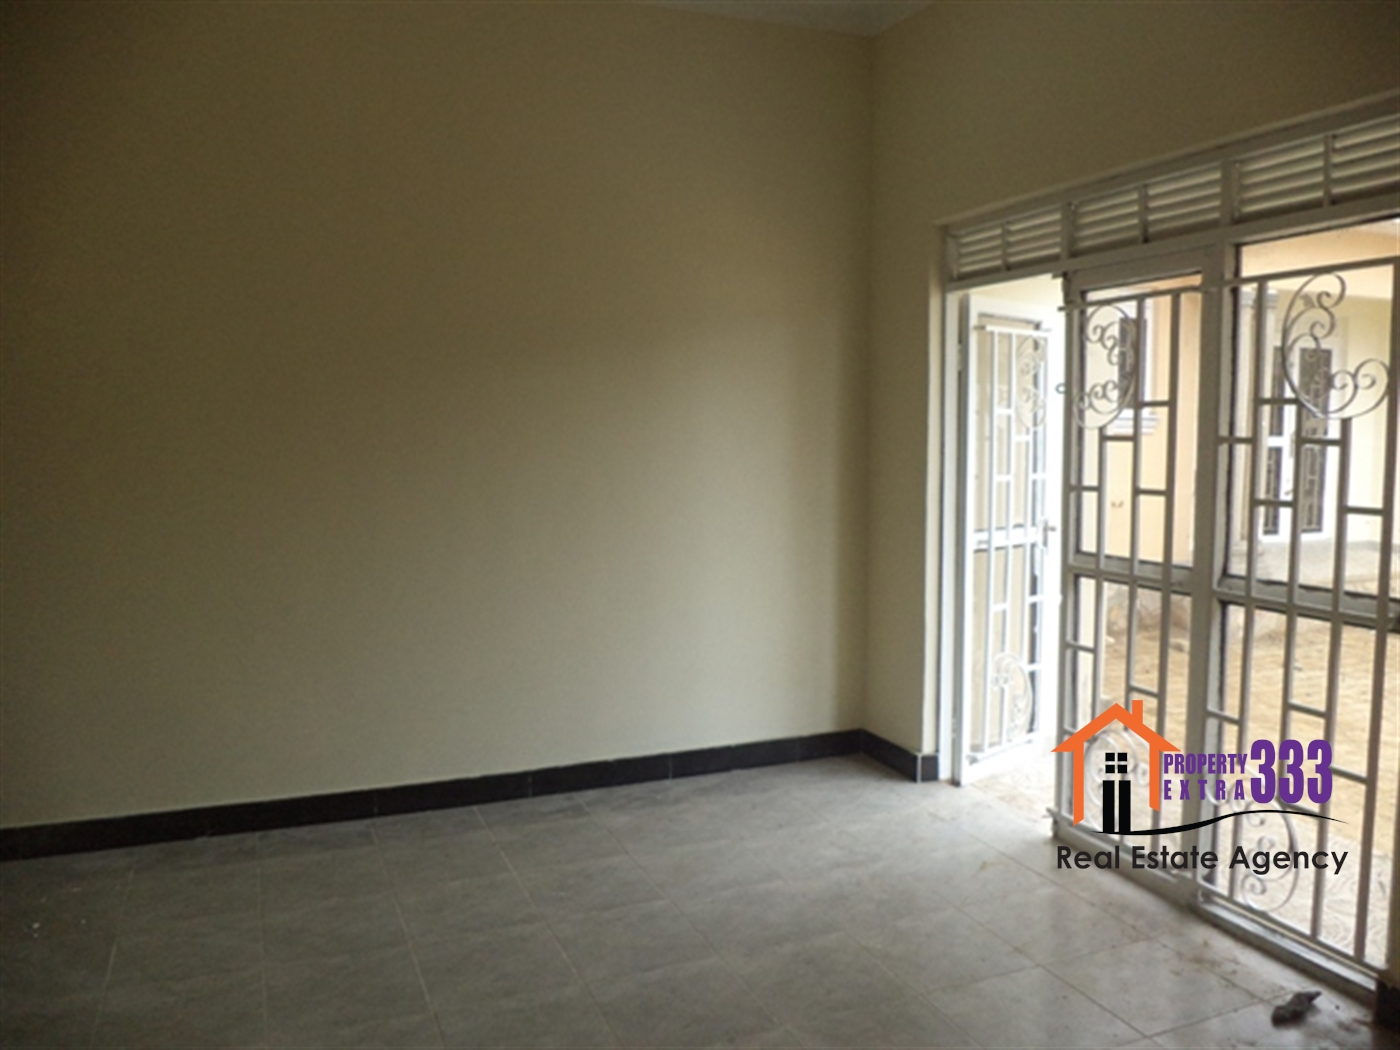 Rental units for sale in Kyanja Kampala